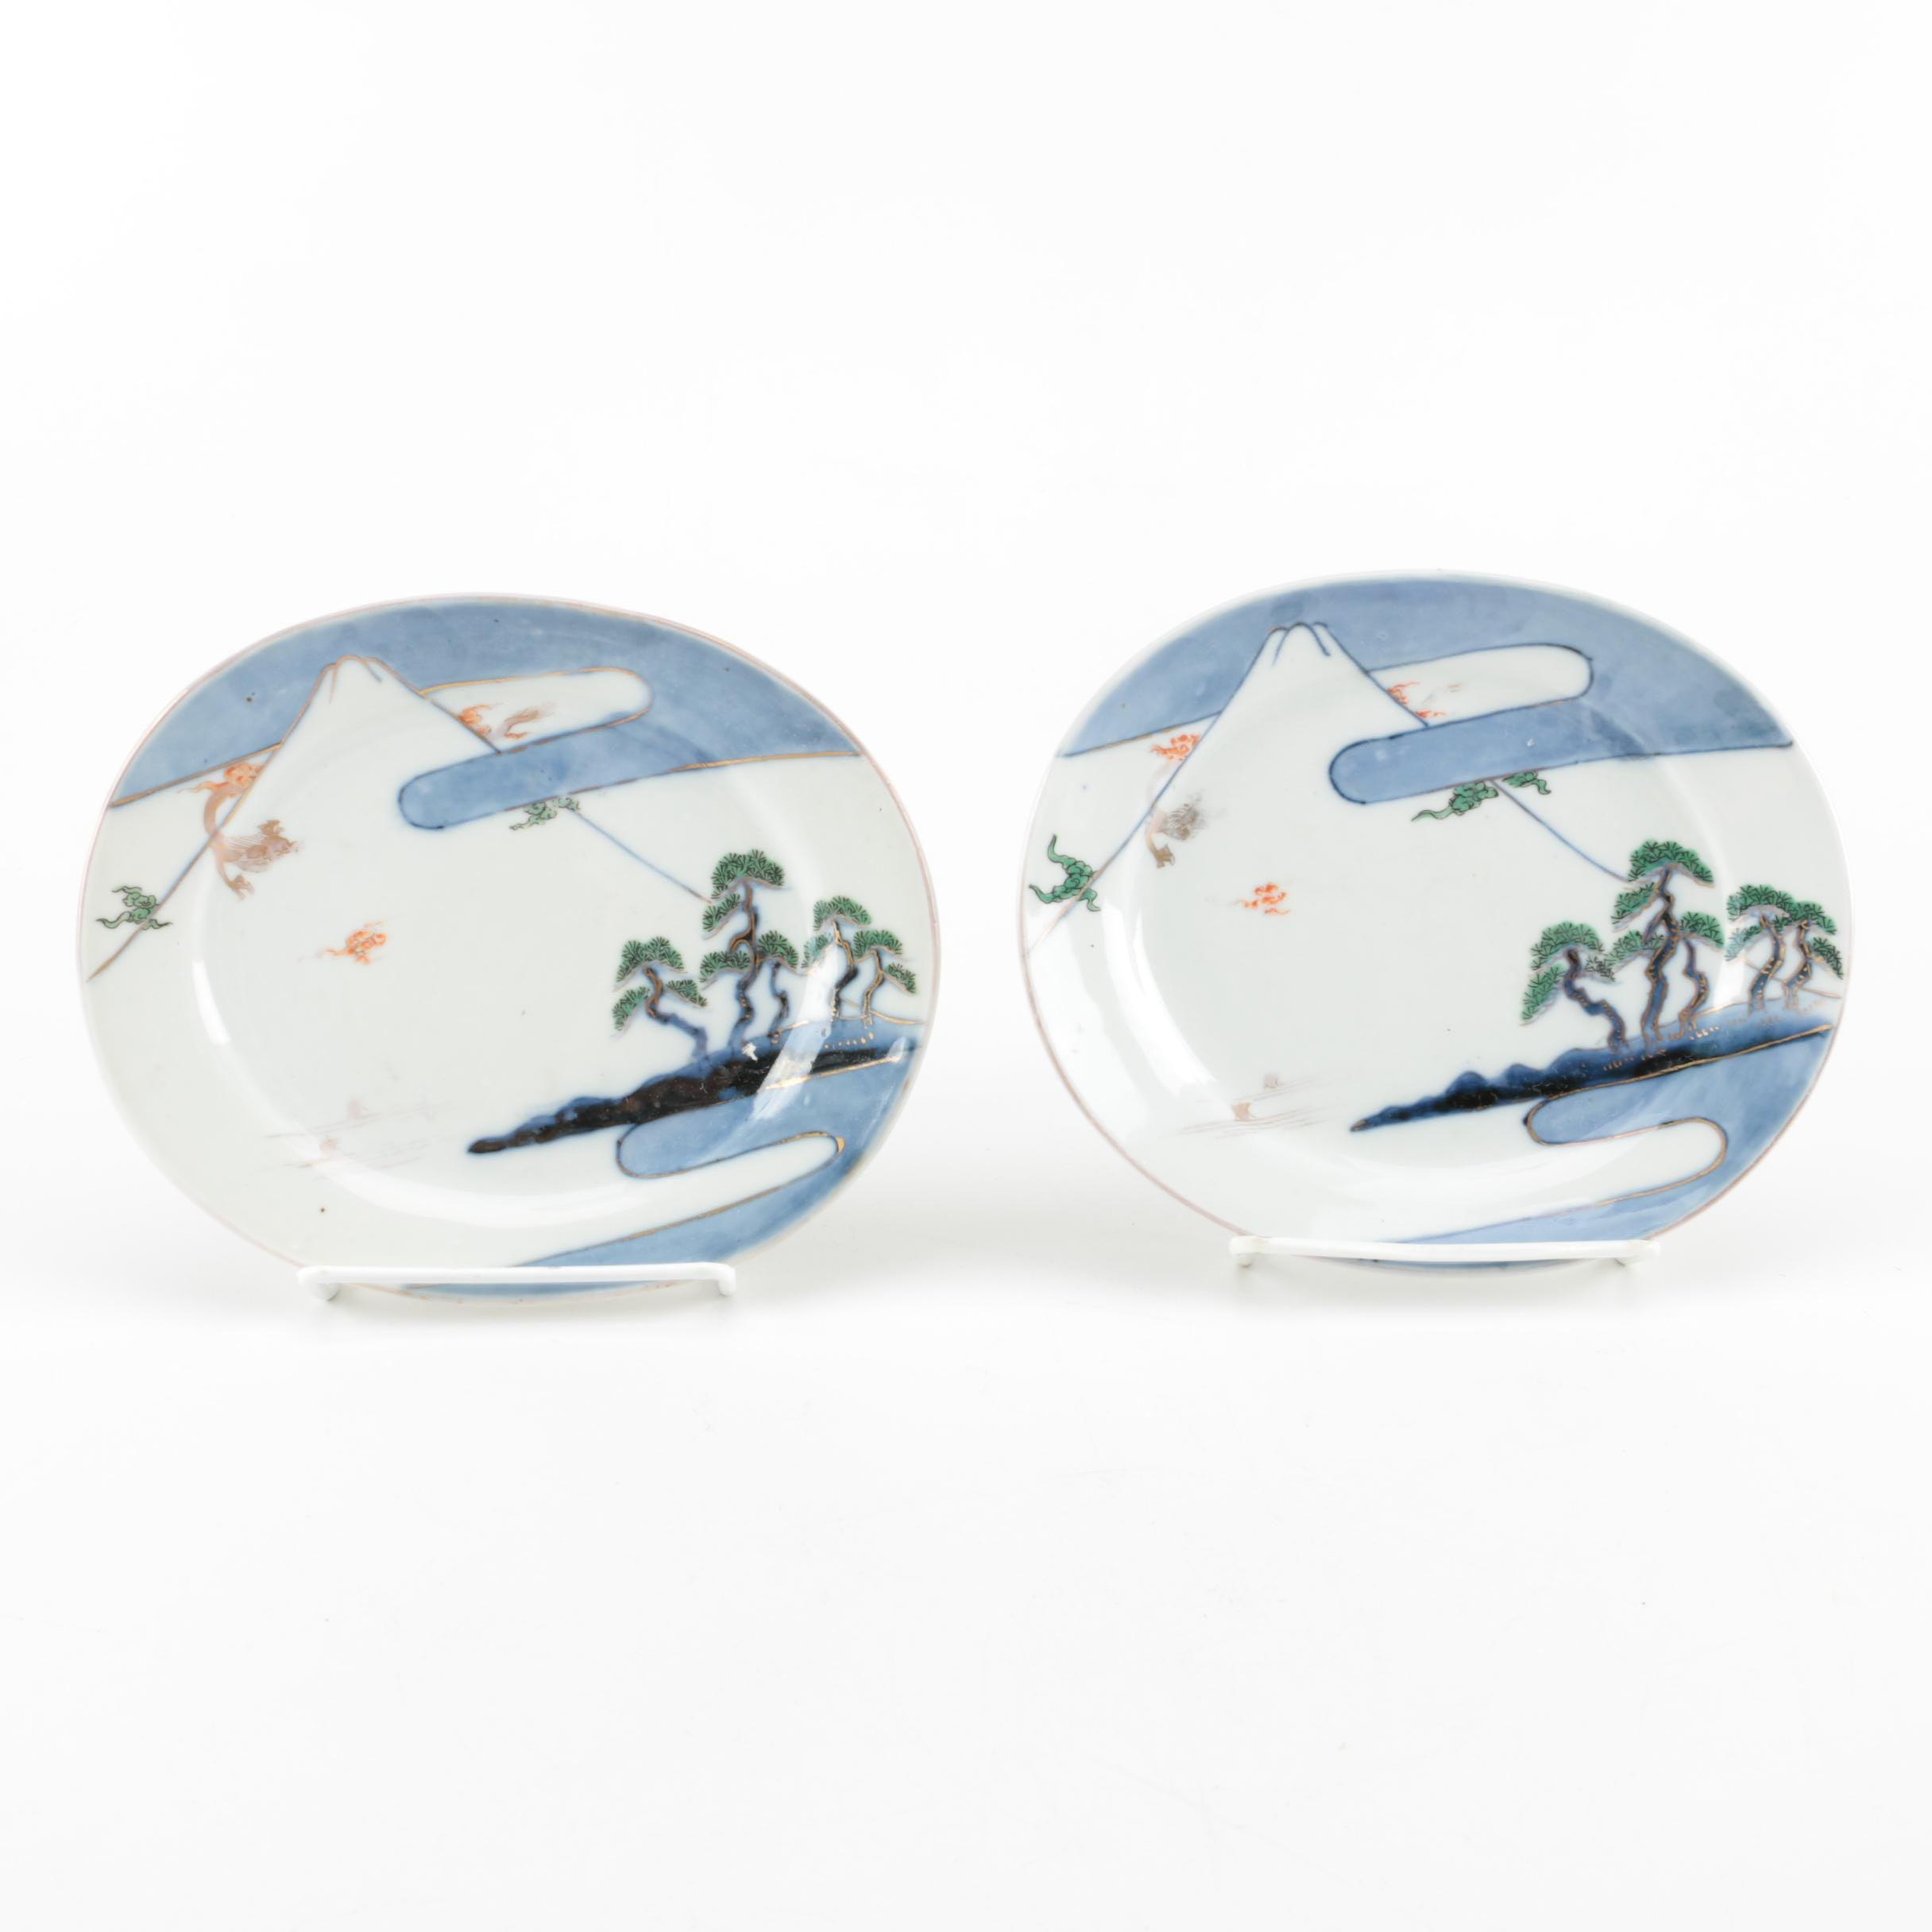 Asian Themed Porcelain Plates